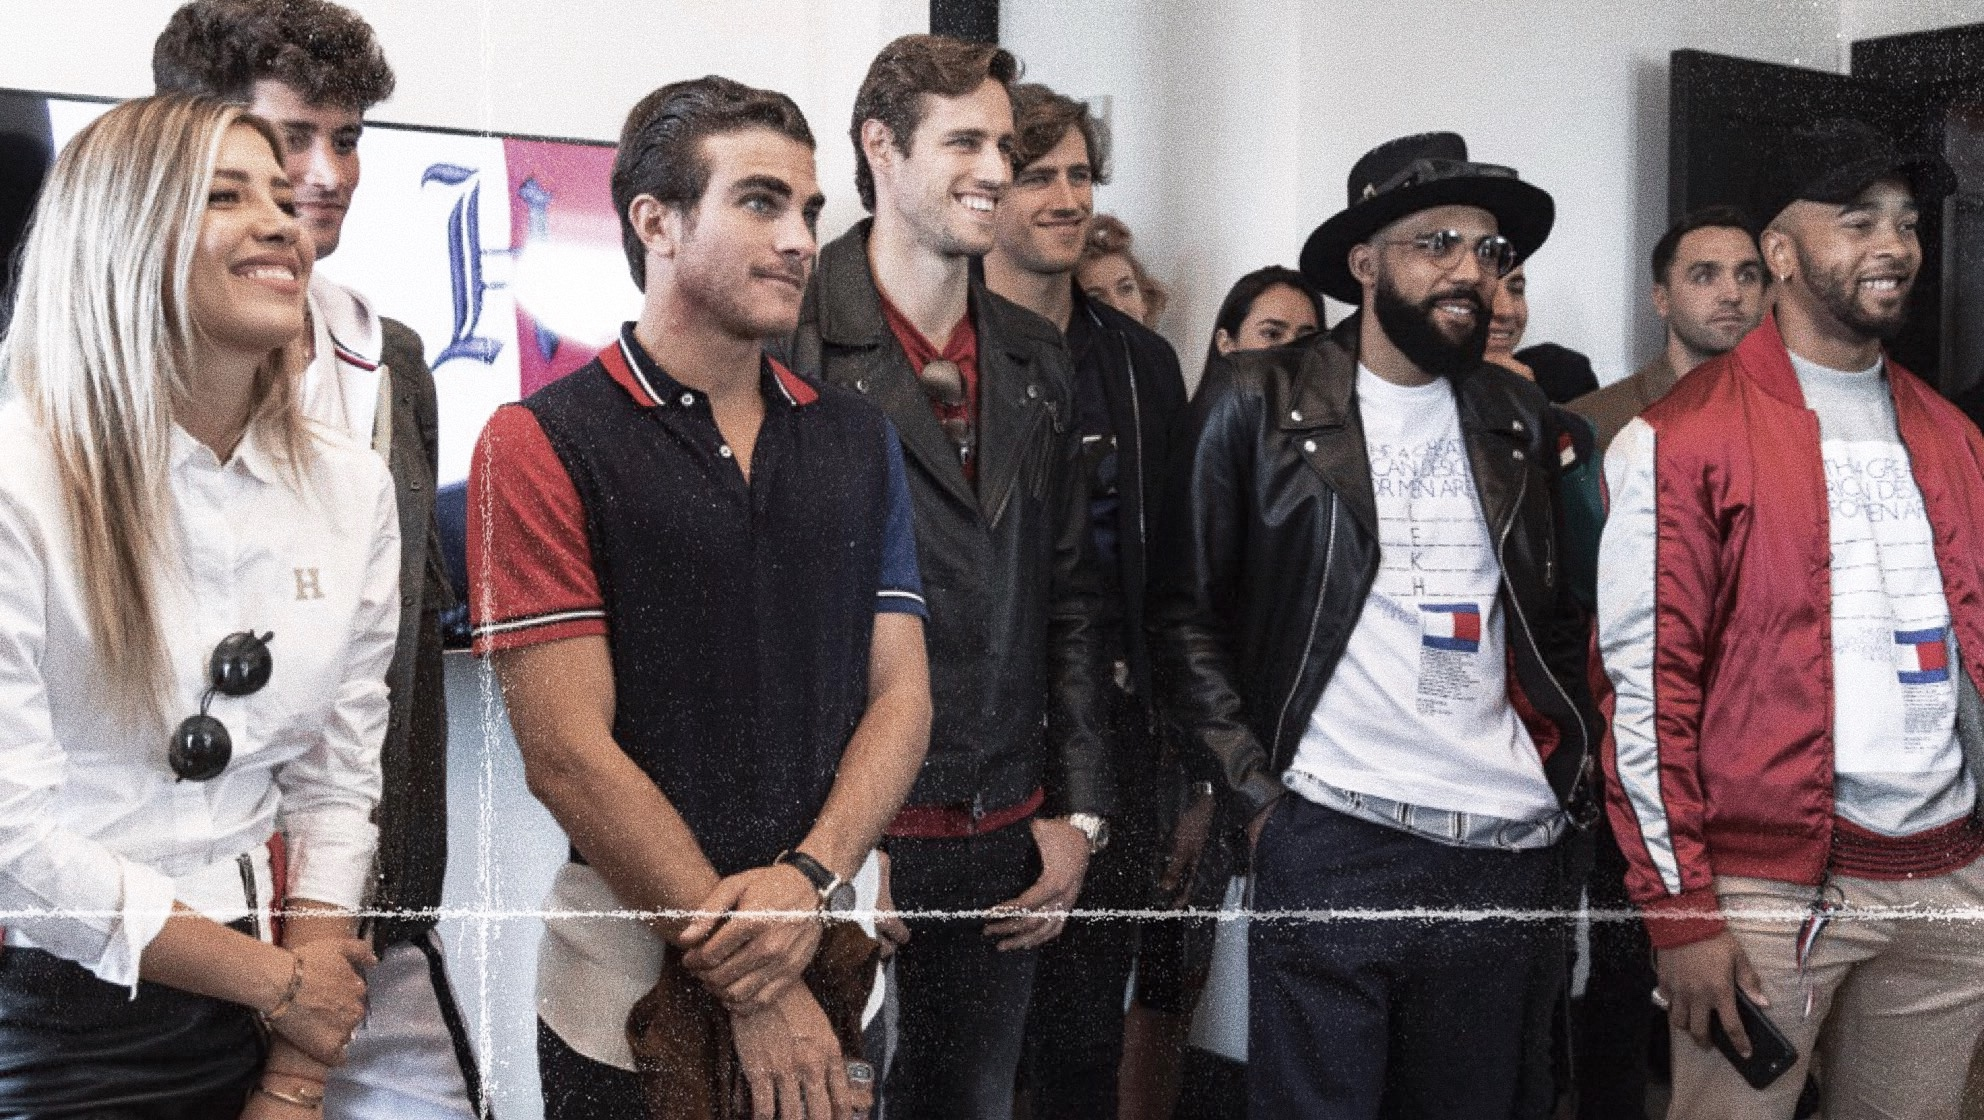 Tommy Hilfiger X Lewis Hamilton Presentation in New York